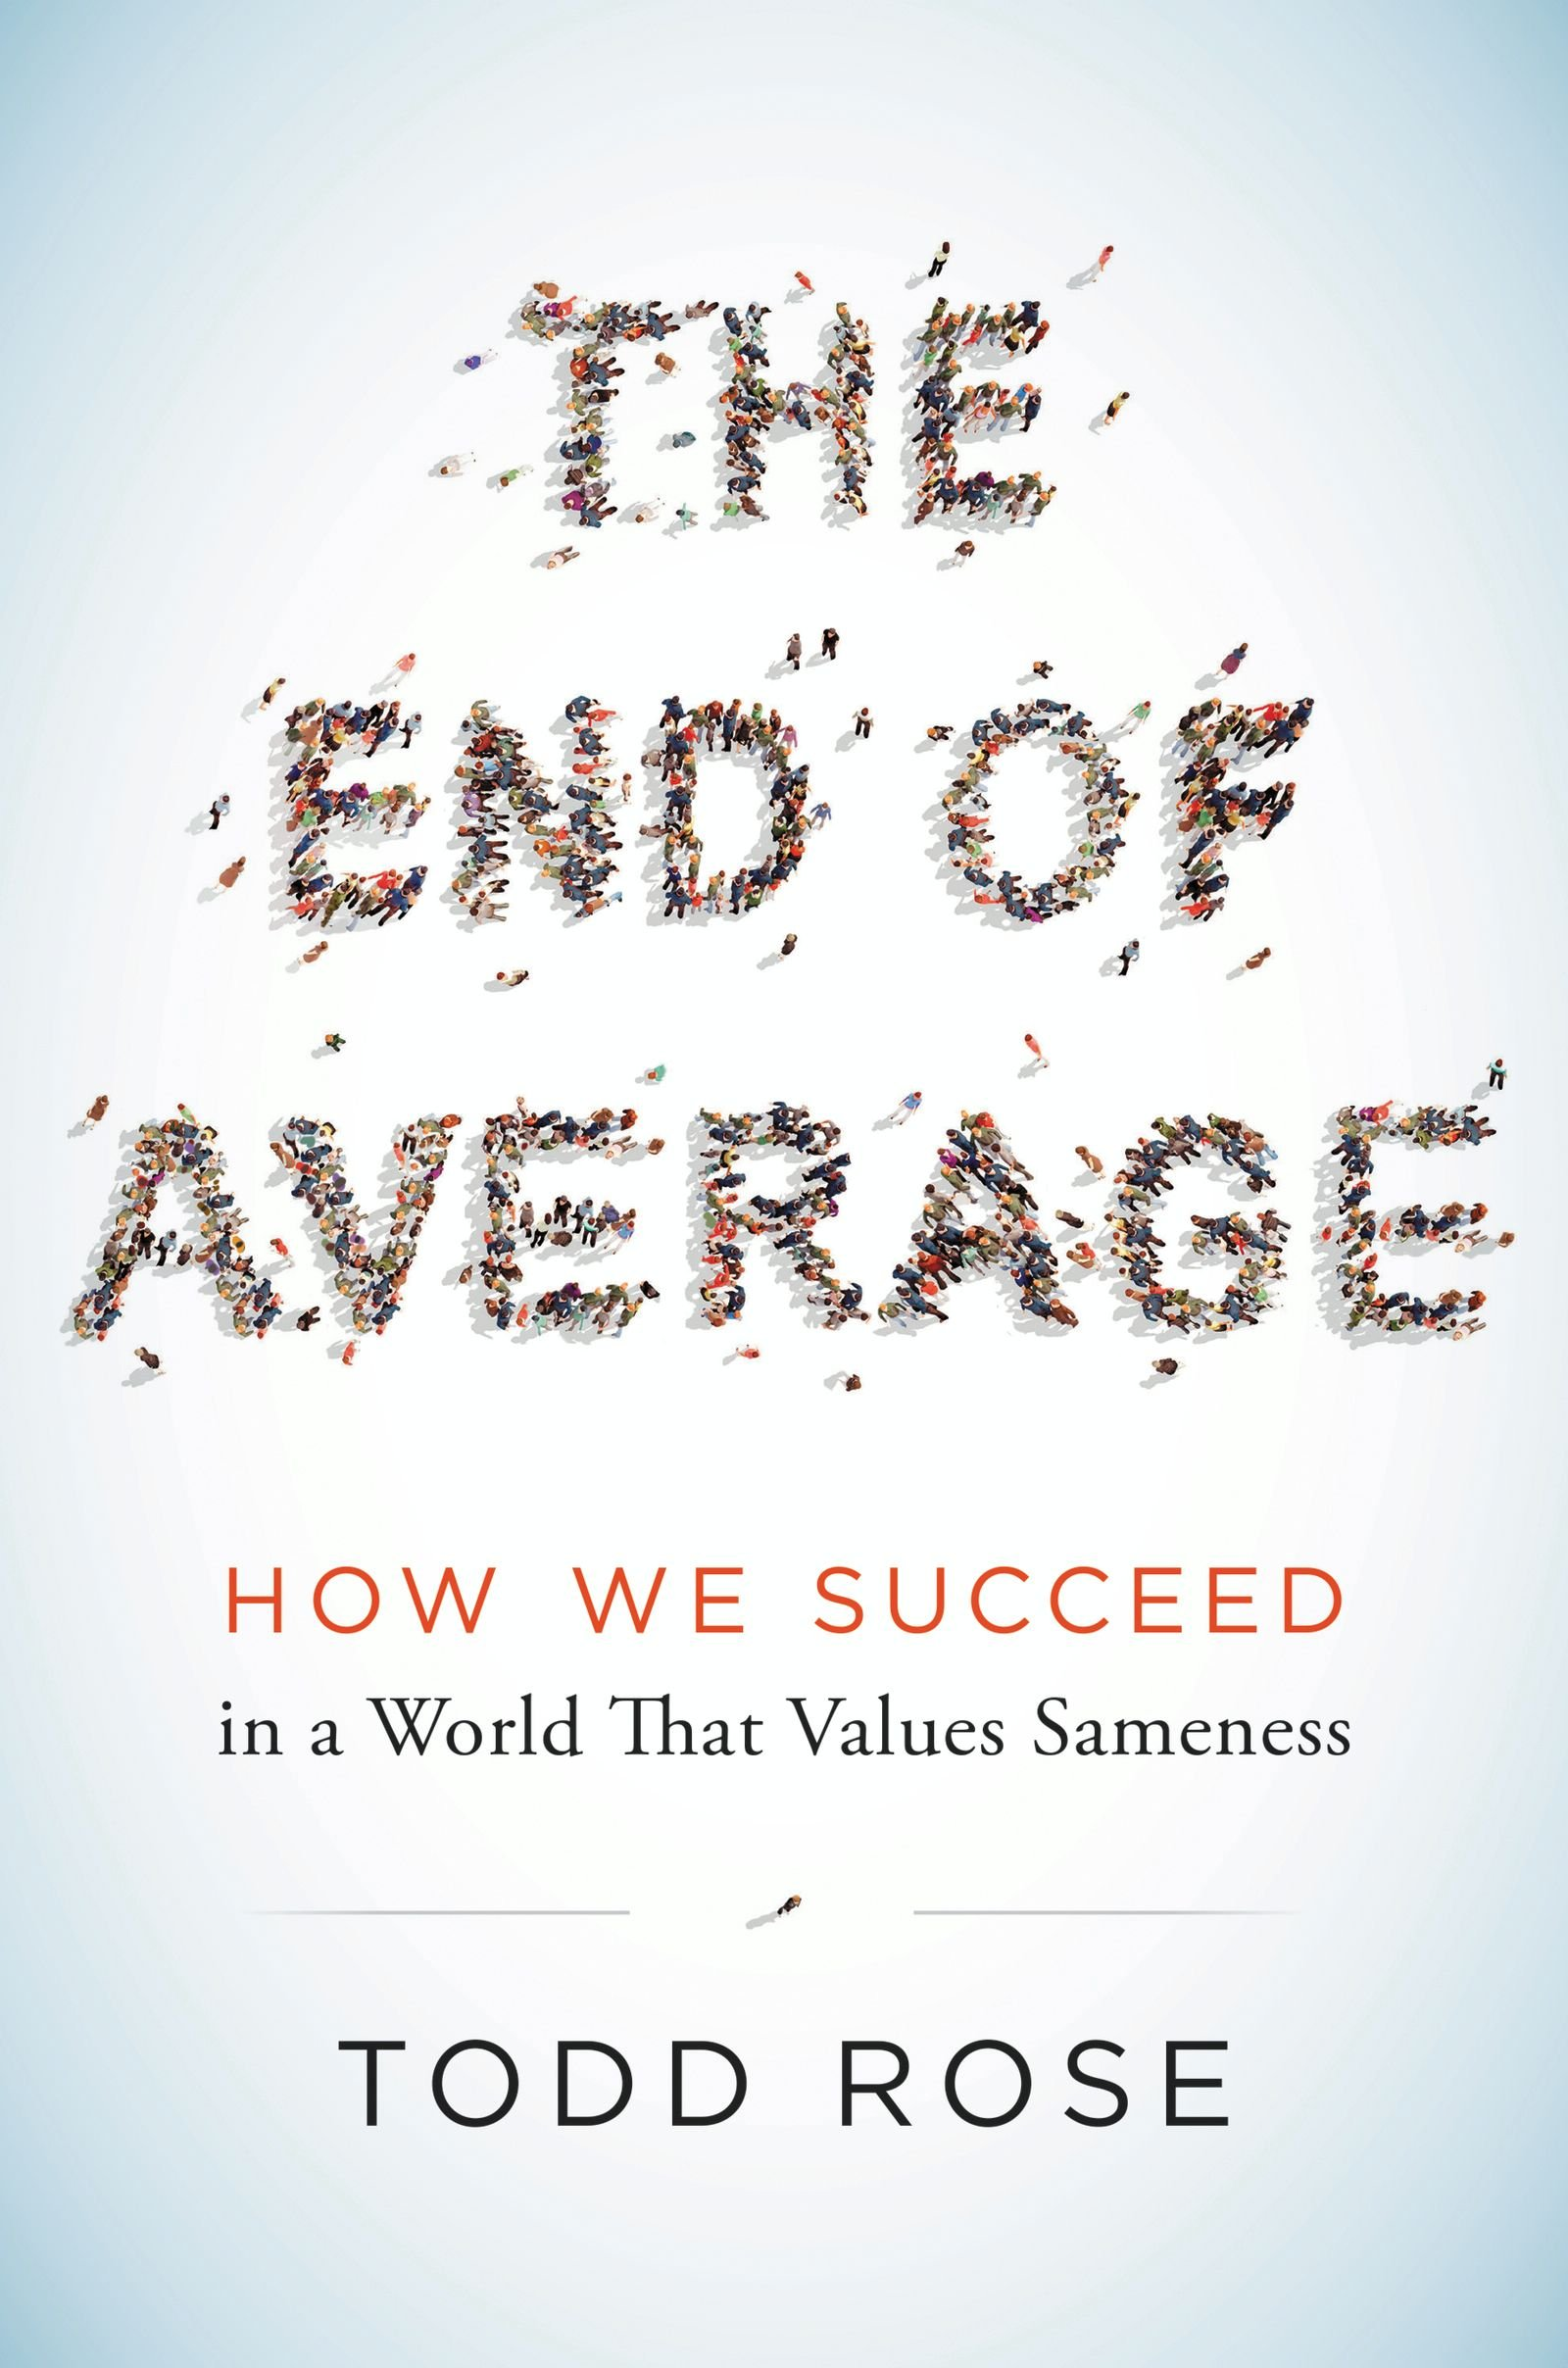 The End of Average (Todd Rose)